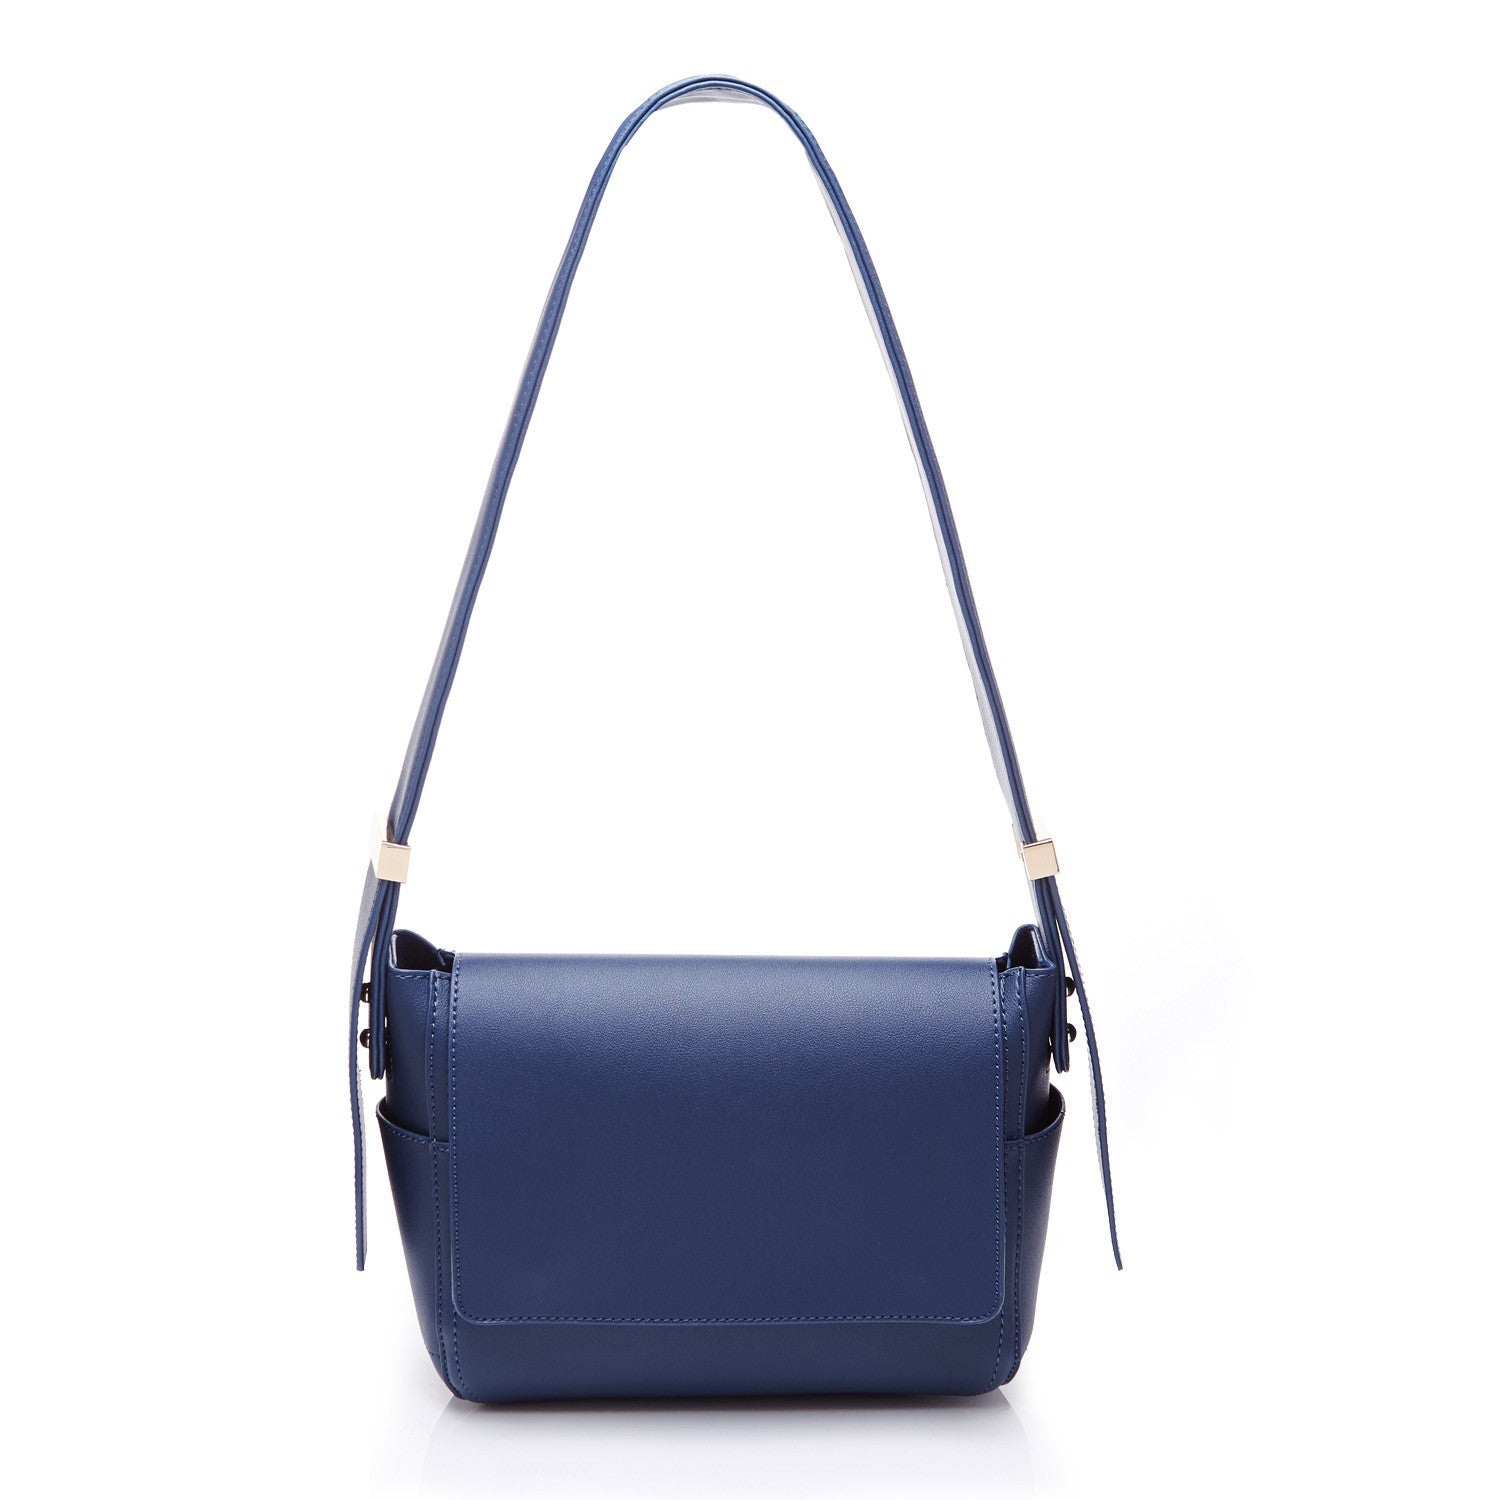 RIBAG MINI - NAVY